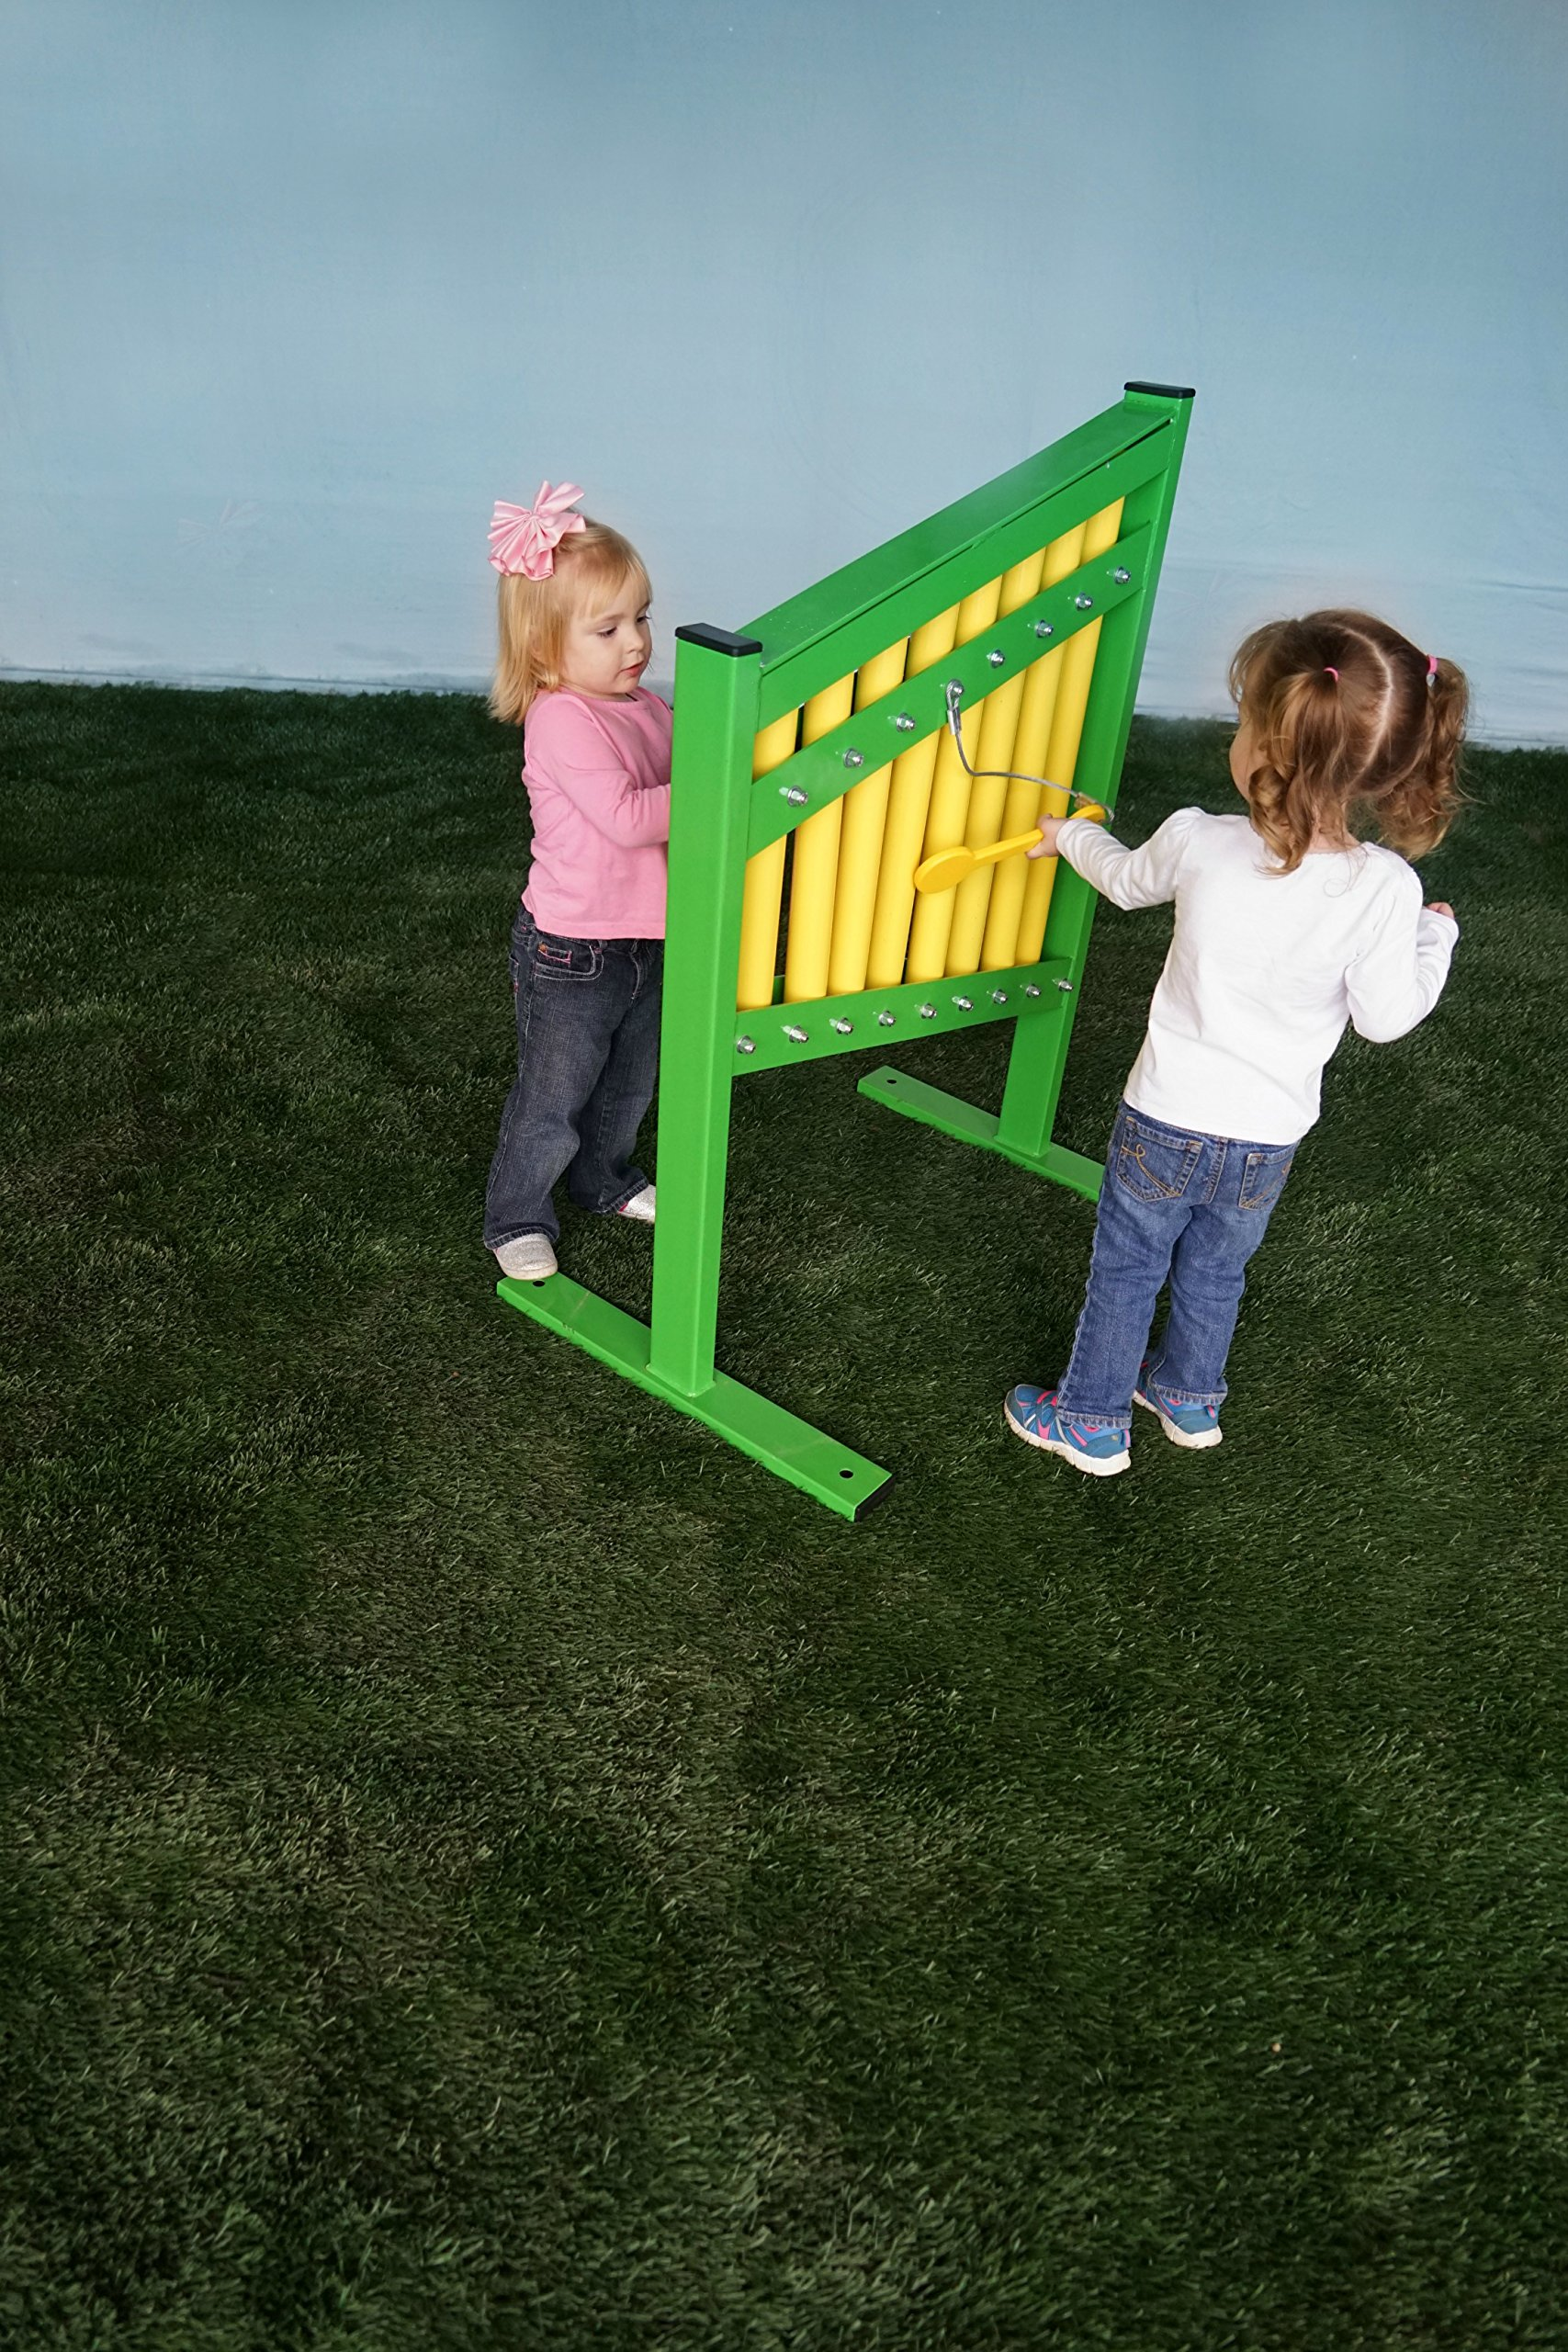 Musical Chime for Children's Playground Fun Perfect for daycares, Development Centers, Churches and Parks